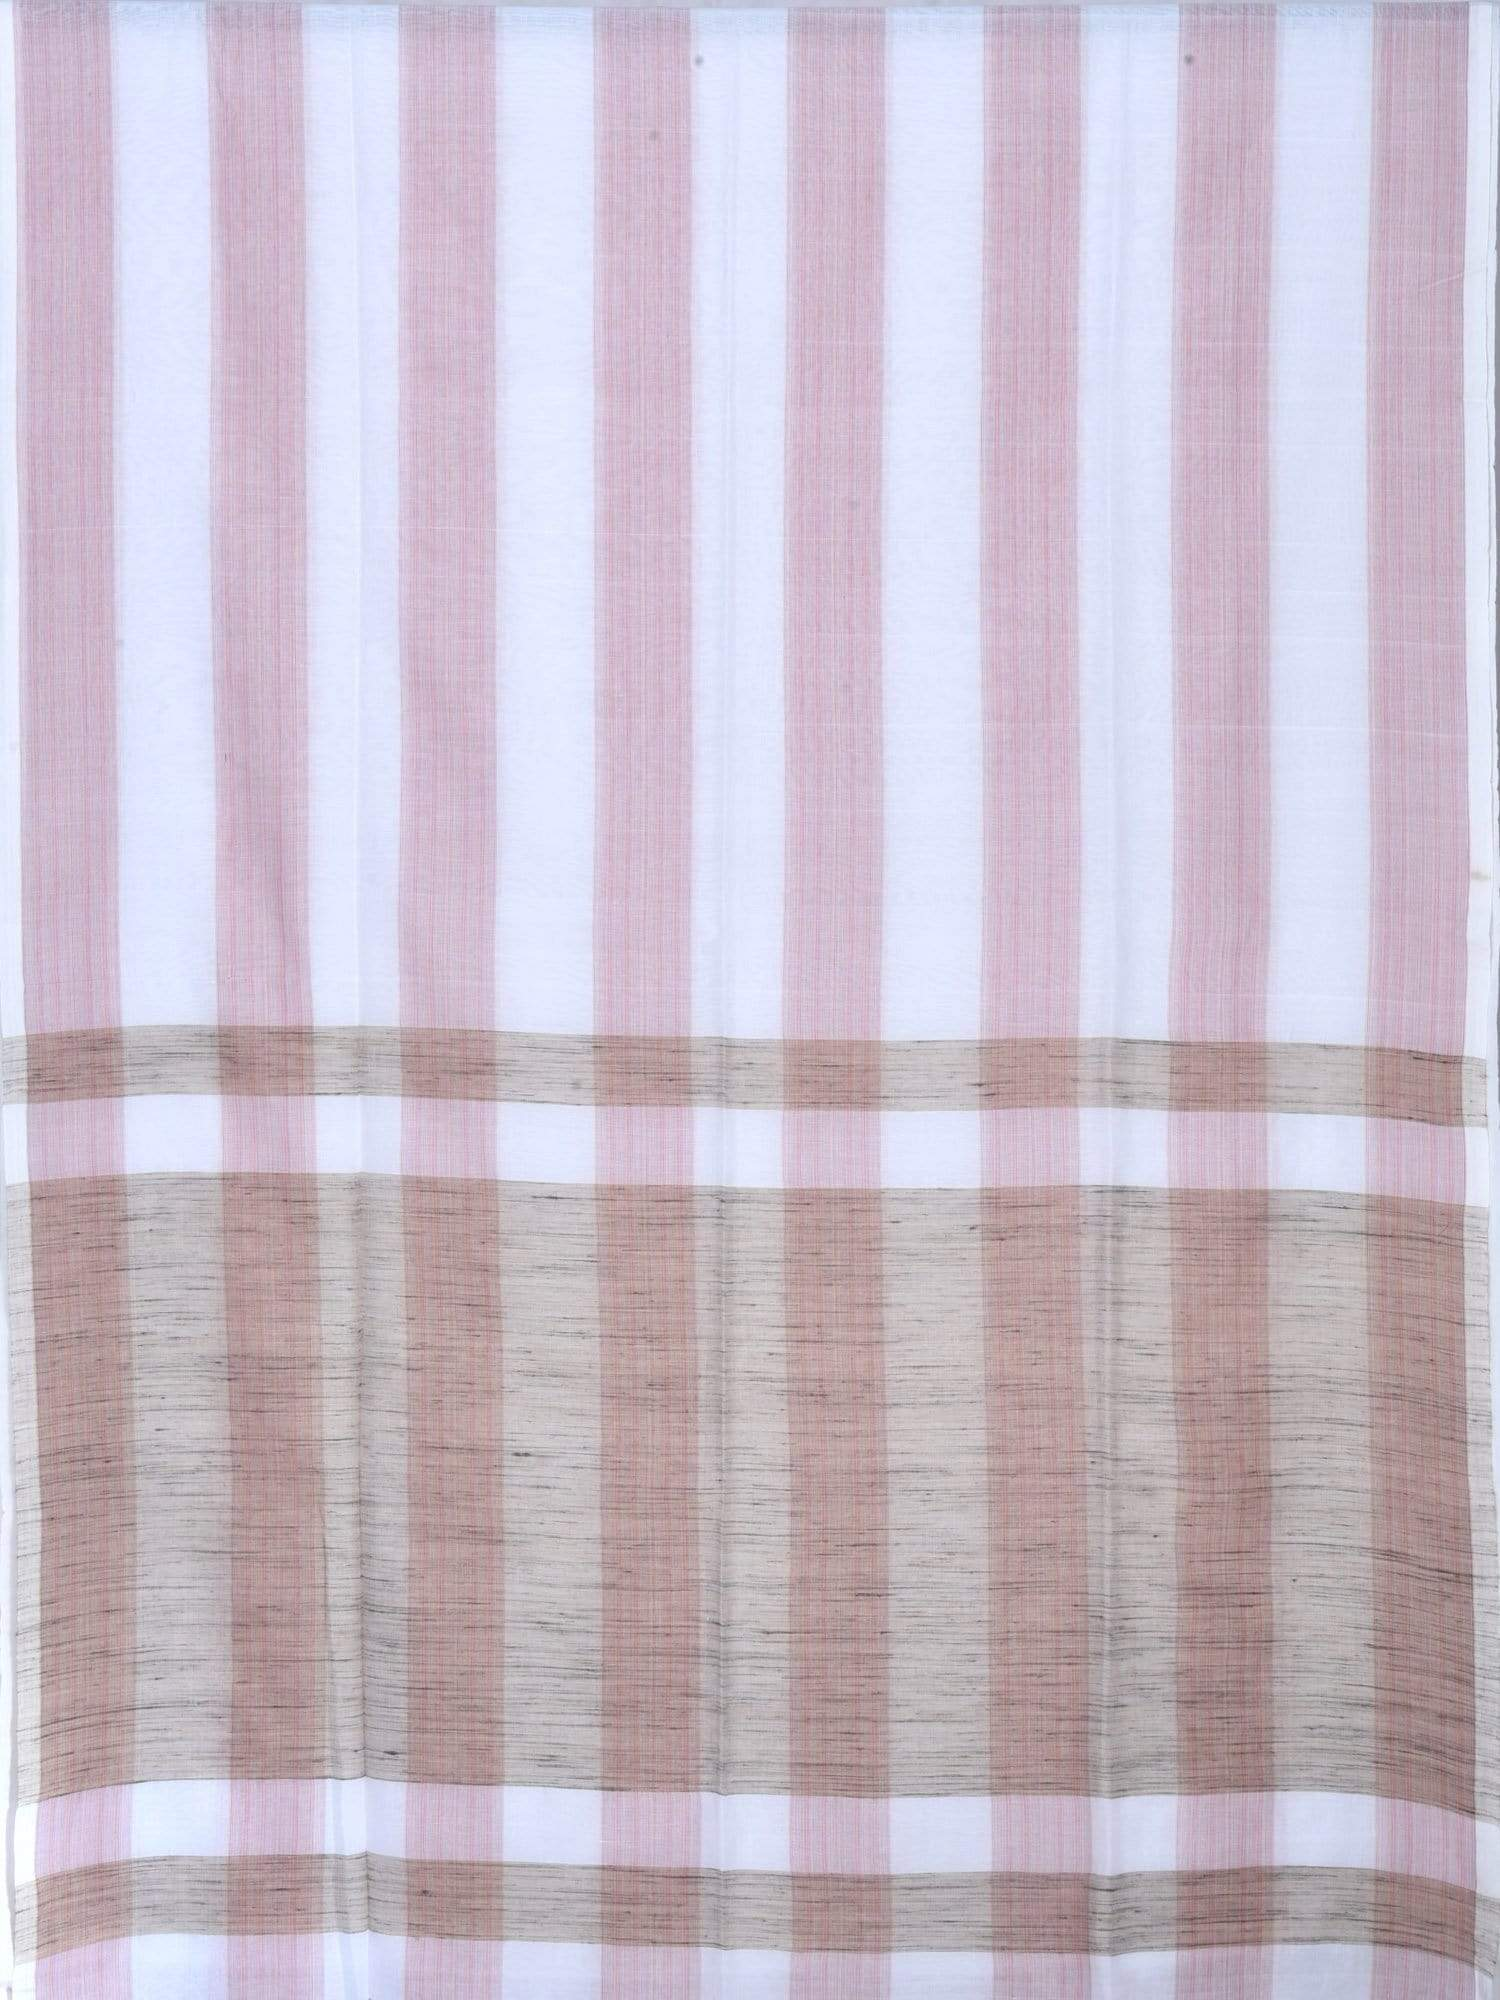 White Organic Cotton Handloom Saree with Strips Design o0208